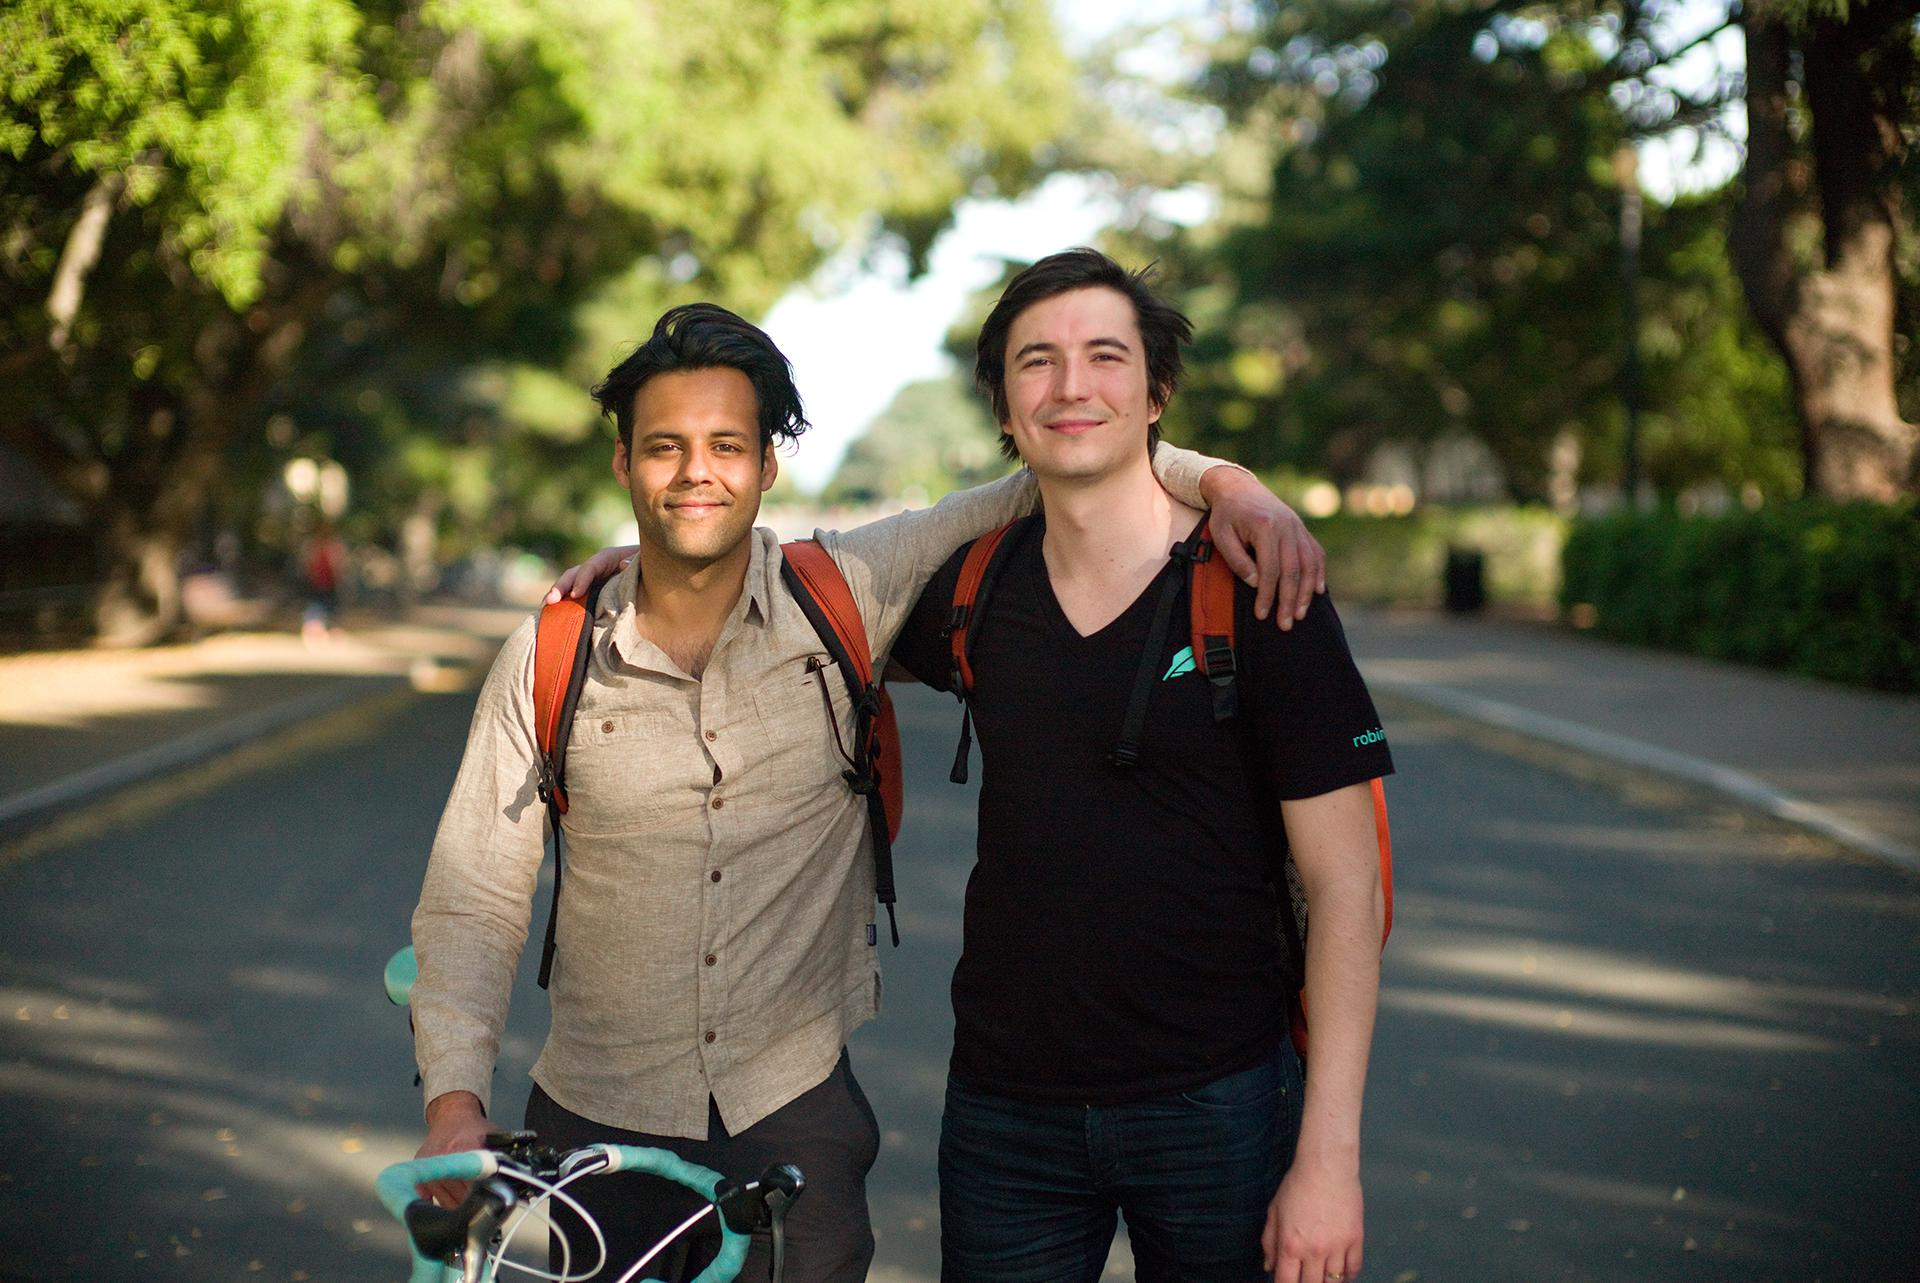 The physics of amateur trading: Baiju Bhatt (left) and Vladimir Tenev met as physics students at Stanford. Even the best modeling could not have predicted that $1,200 stimulus checks would propel them to billionaire status.